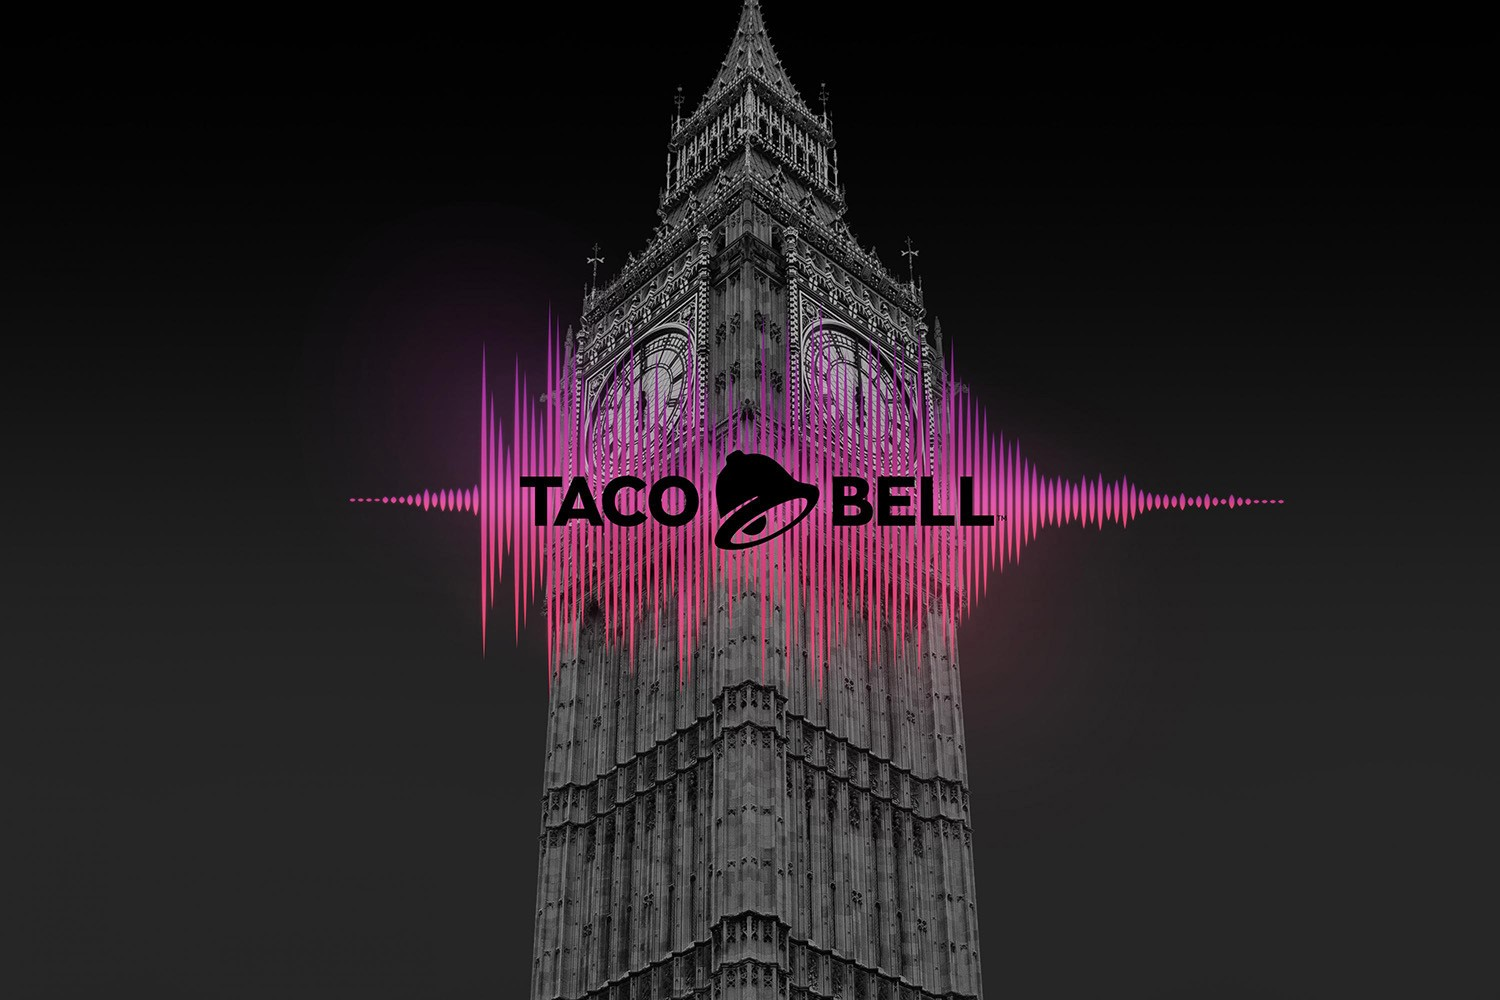 Taco Bell announces its arrival in London the Big Ben style!